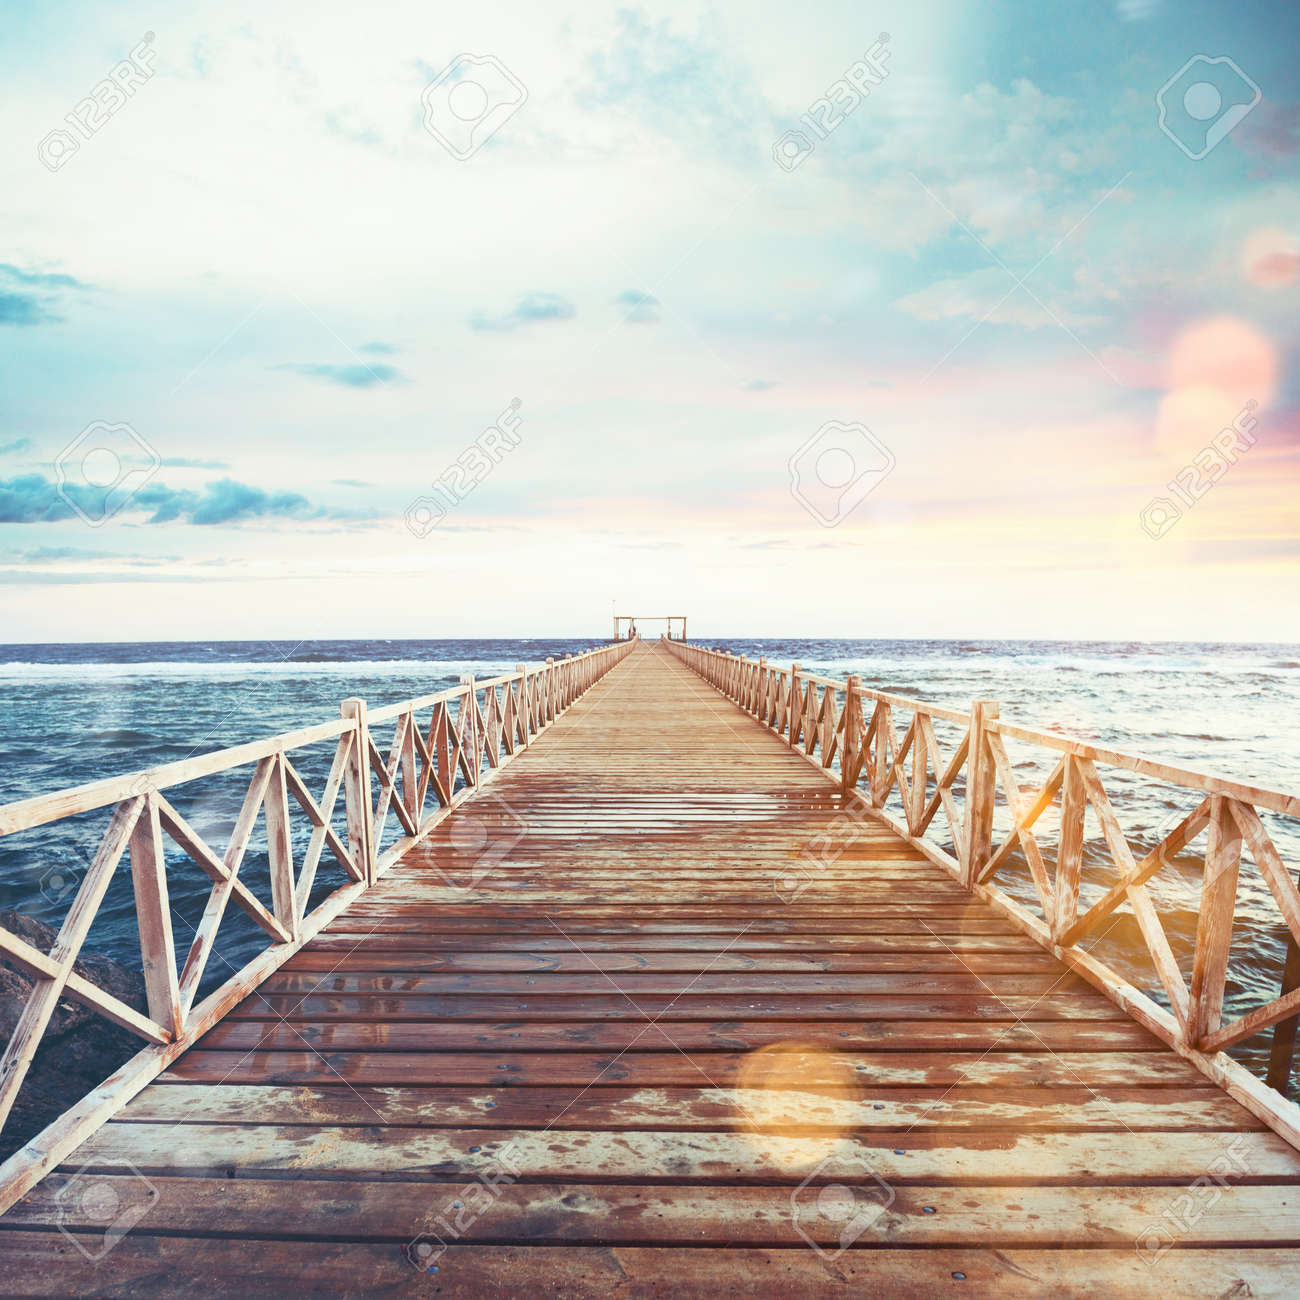 Pier on the sea at sunset - 82823747